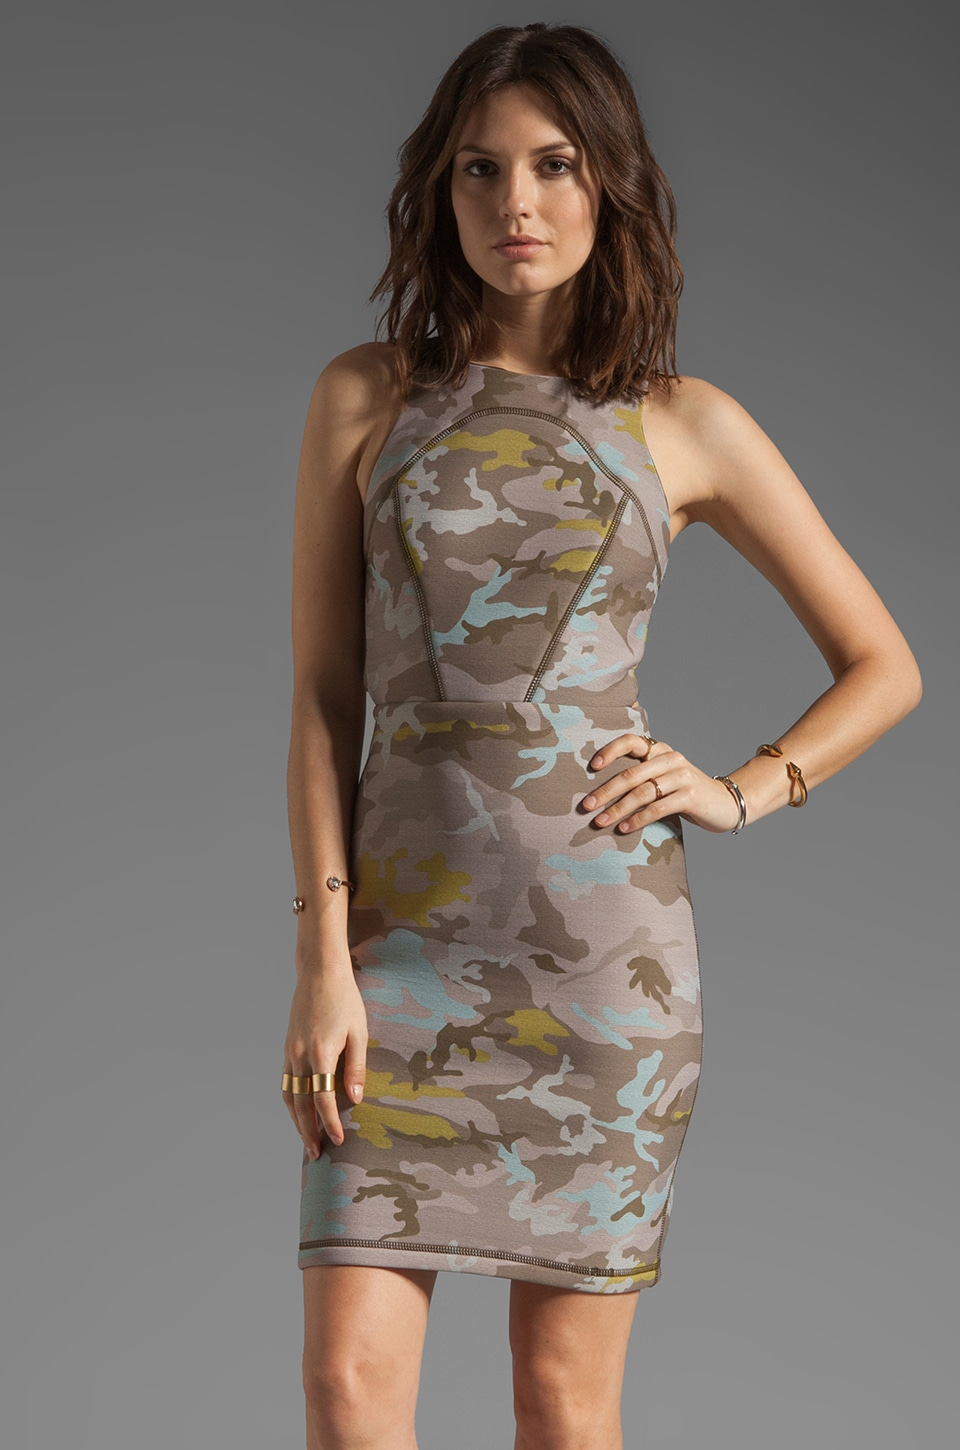 Cynthia Rowley Bonded Open Back Dress in Camo